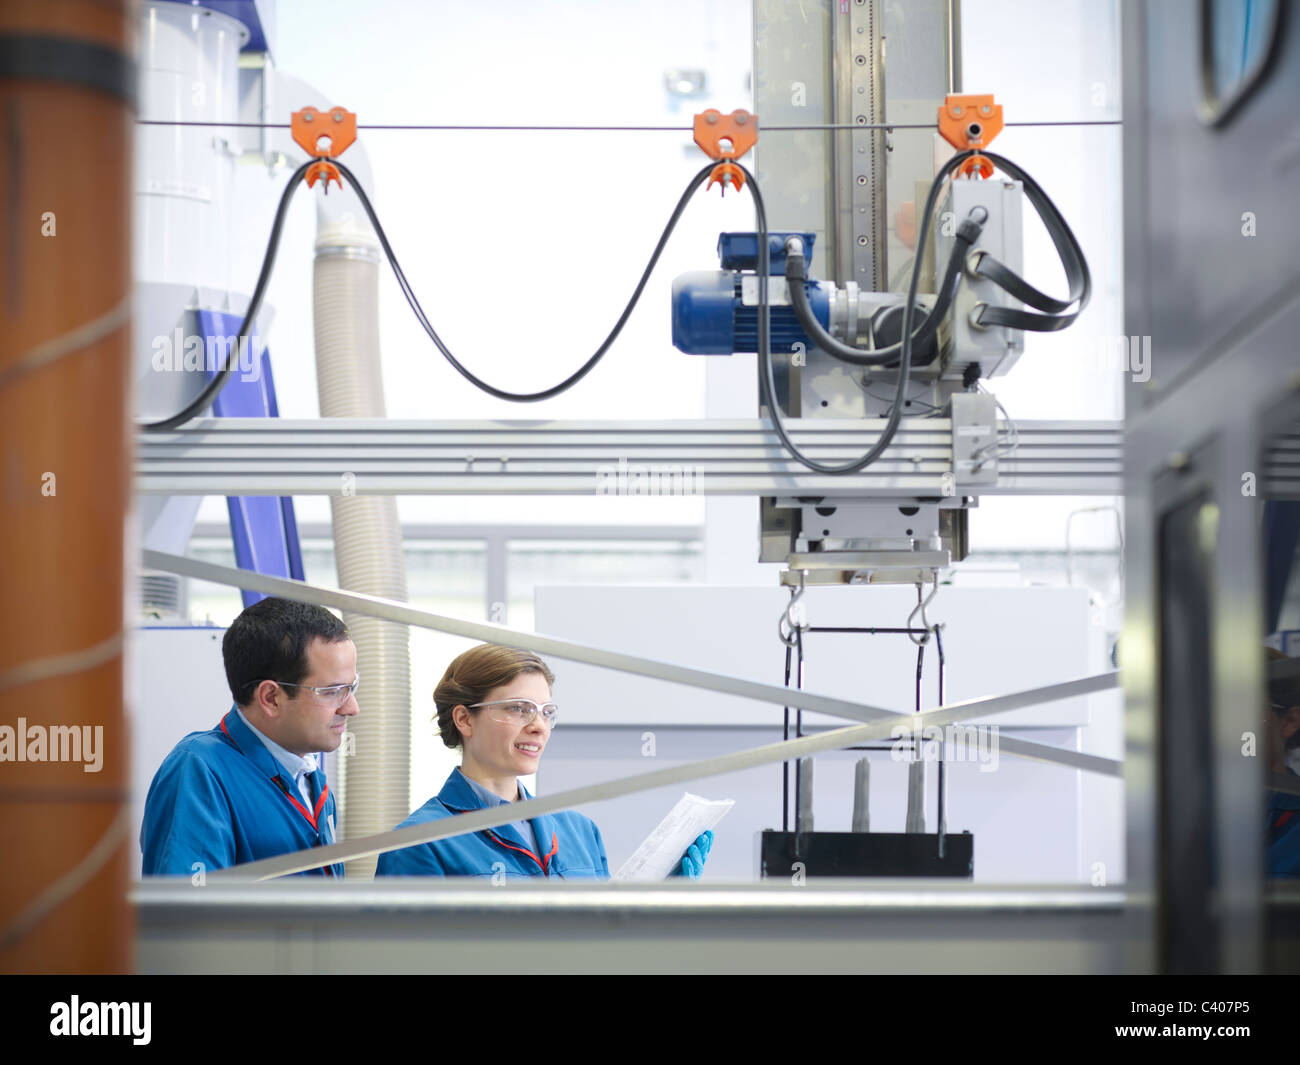 Scientists with product being processed - Stock Image